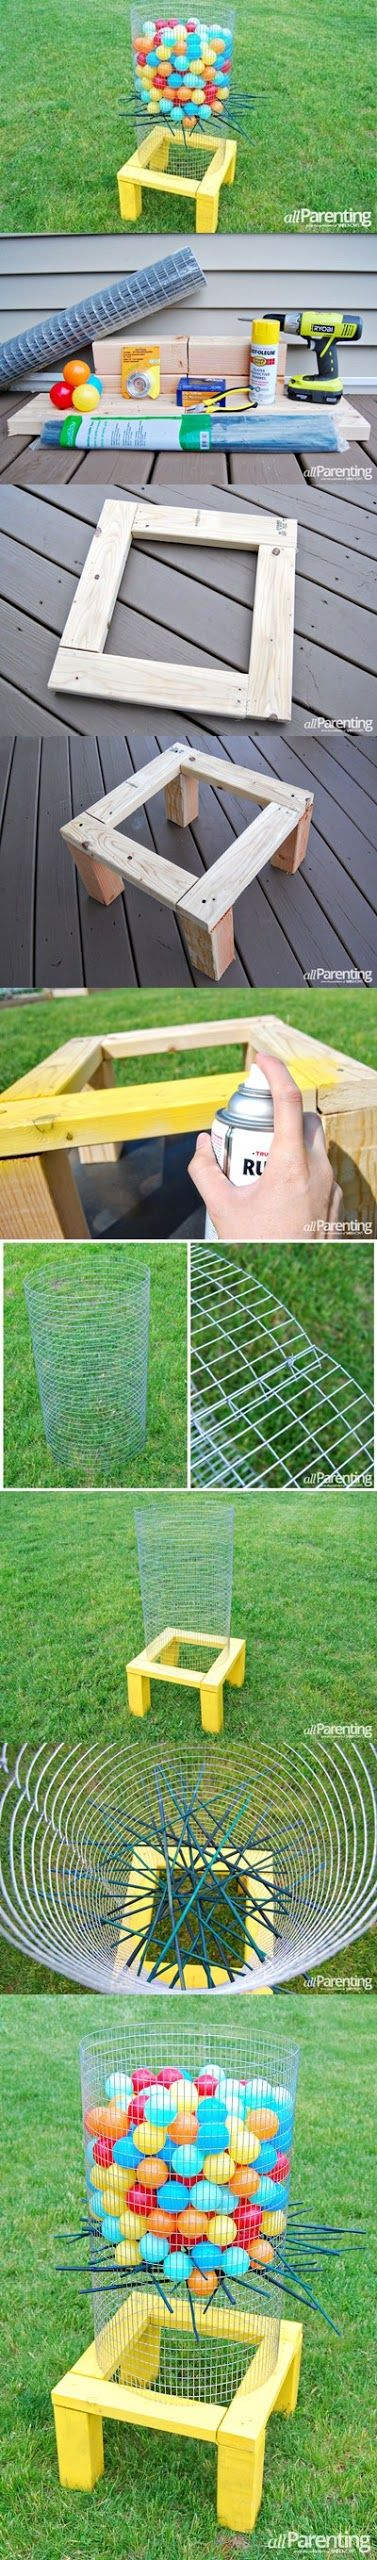 78 Best Diy Images On Pinterest Woodworking Carpentry And Civil Angus Surrounding Area Ground Fault Circuit Interrupters Gfcis You Know Filling It With Marked Balls For Prizes Would Be A Cool Or Prises Themselves